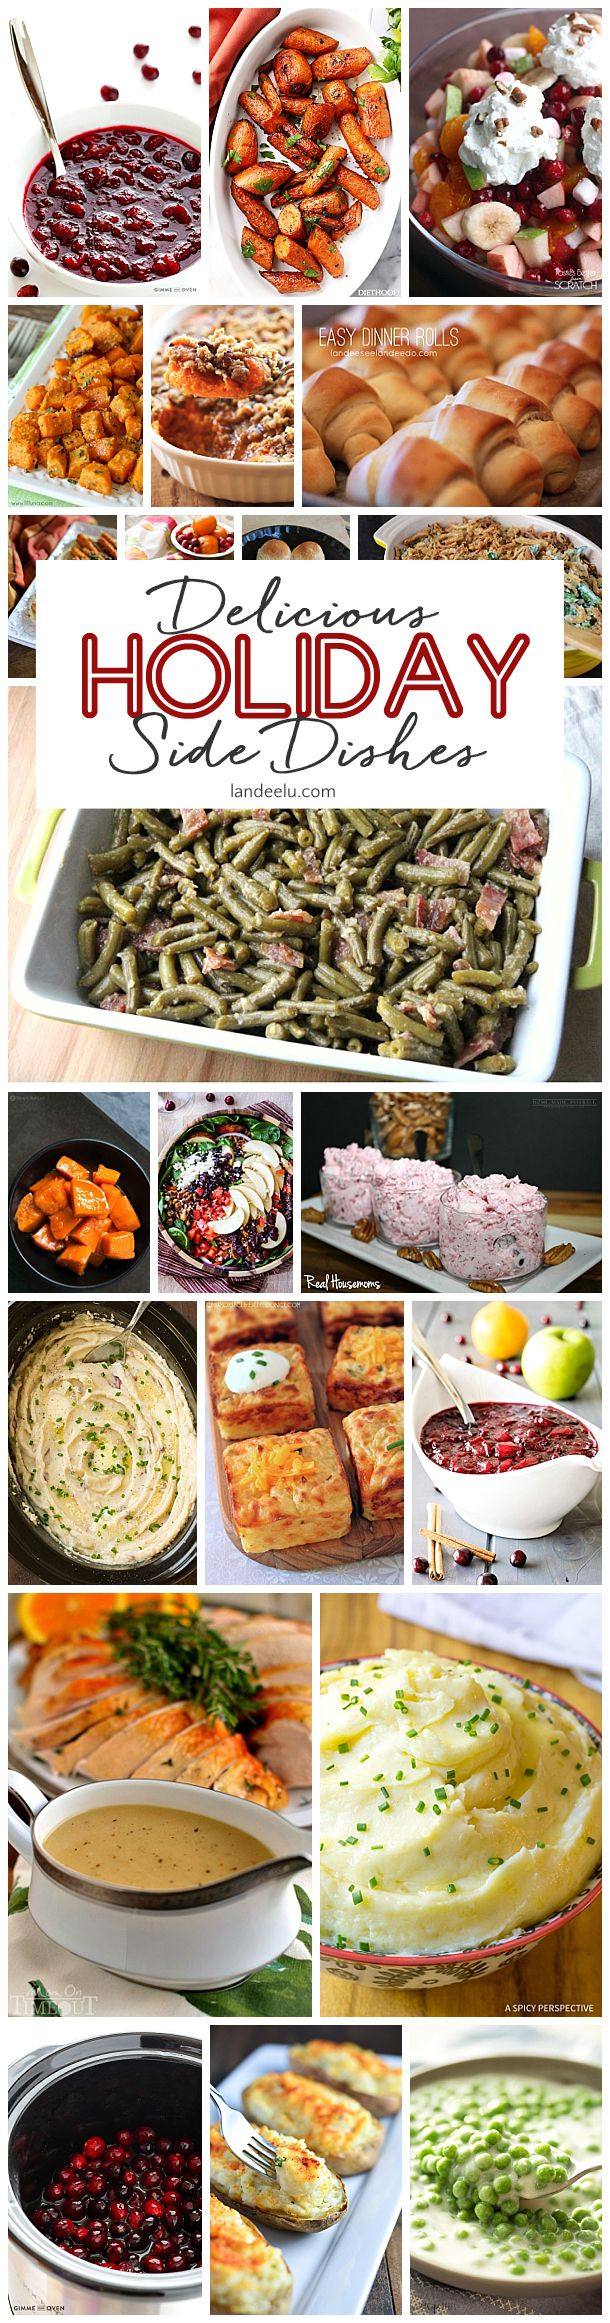 holiday side dish recipes tis the season to make special holiday side dishes for those you love i cant wait to try some of these side dish recipe - Christmas Side Dishes Pinterest